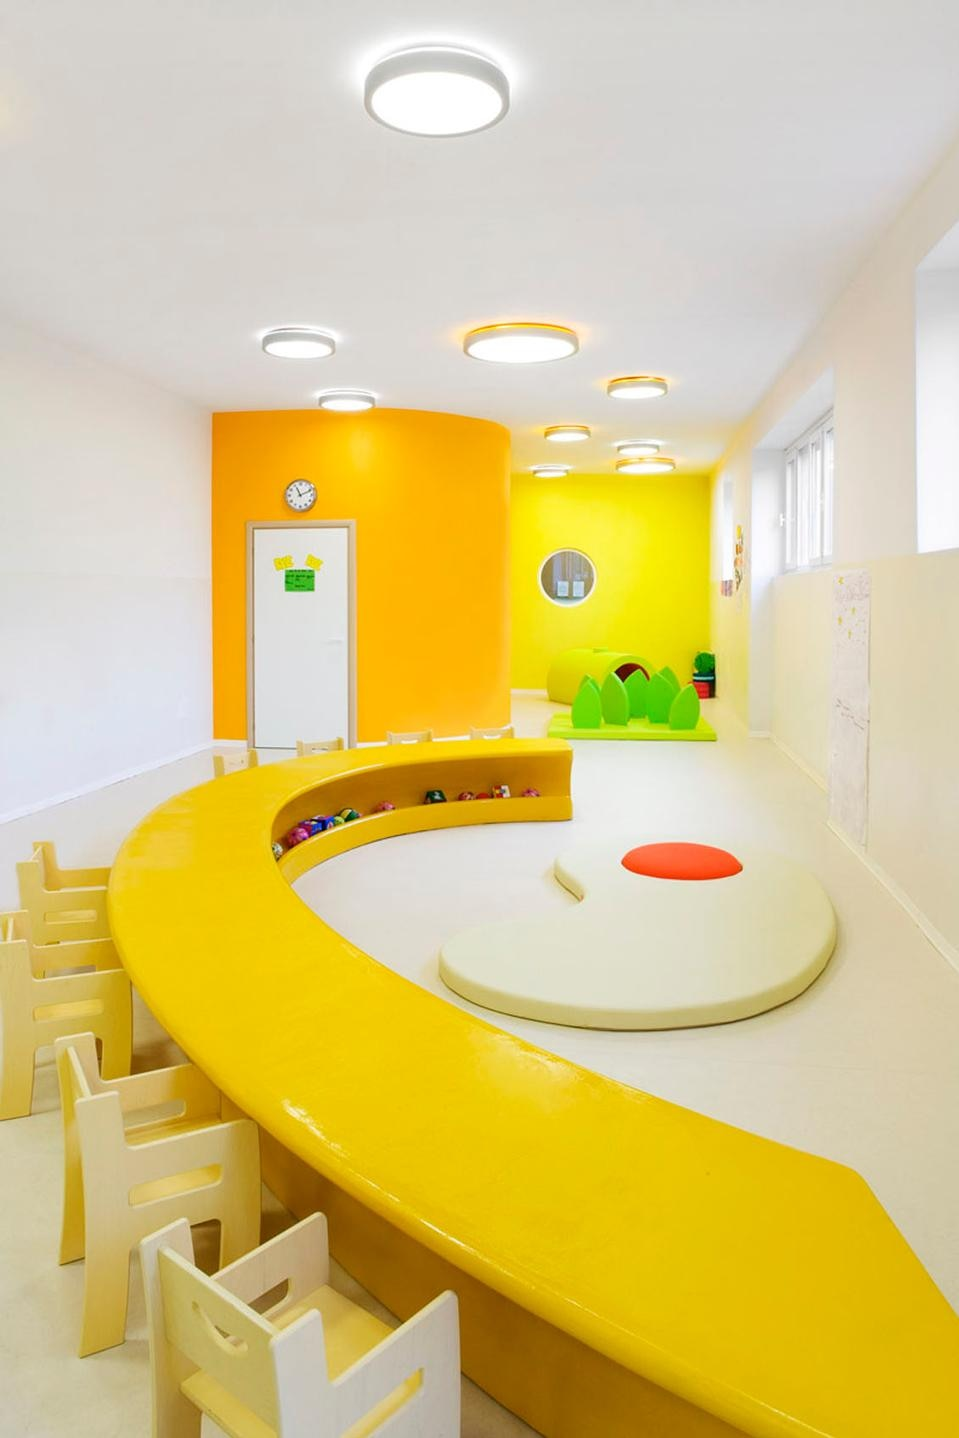 Massimo adiansi nursery and pre school for Interior design and decorating schools in lagos